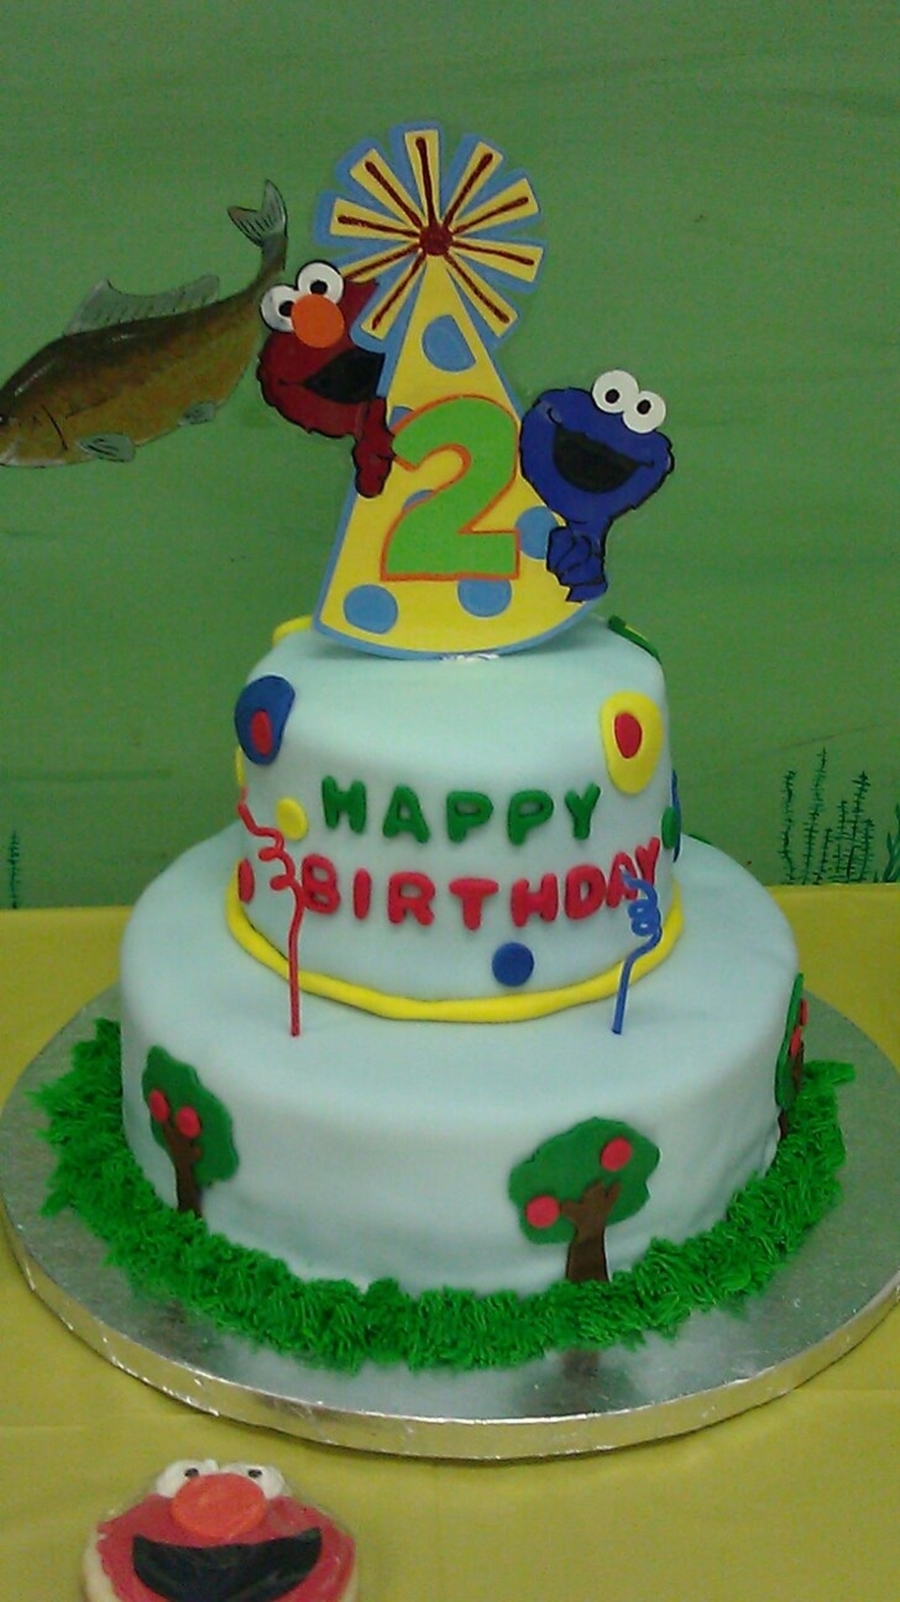 Cookie Monster & Elmo Cake on Cake Central